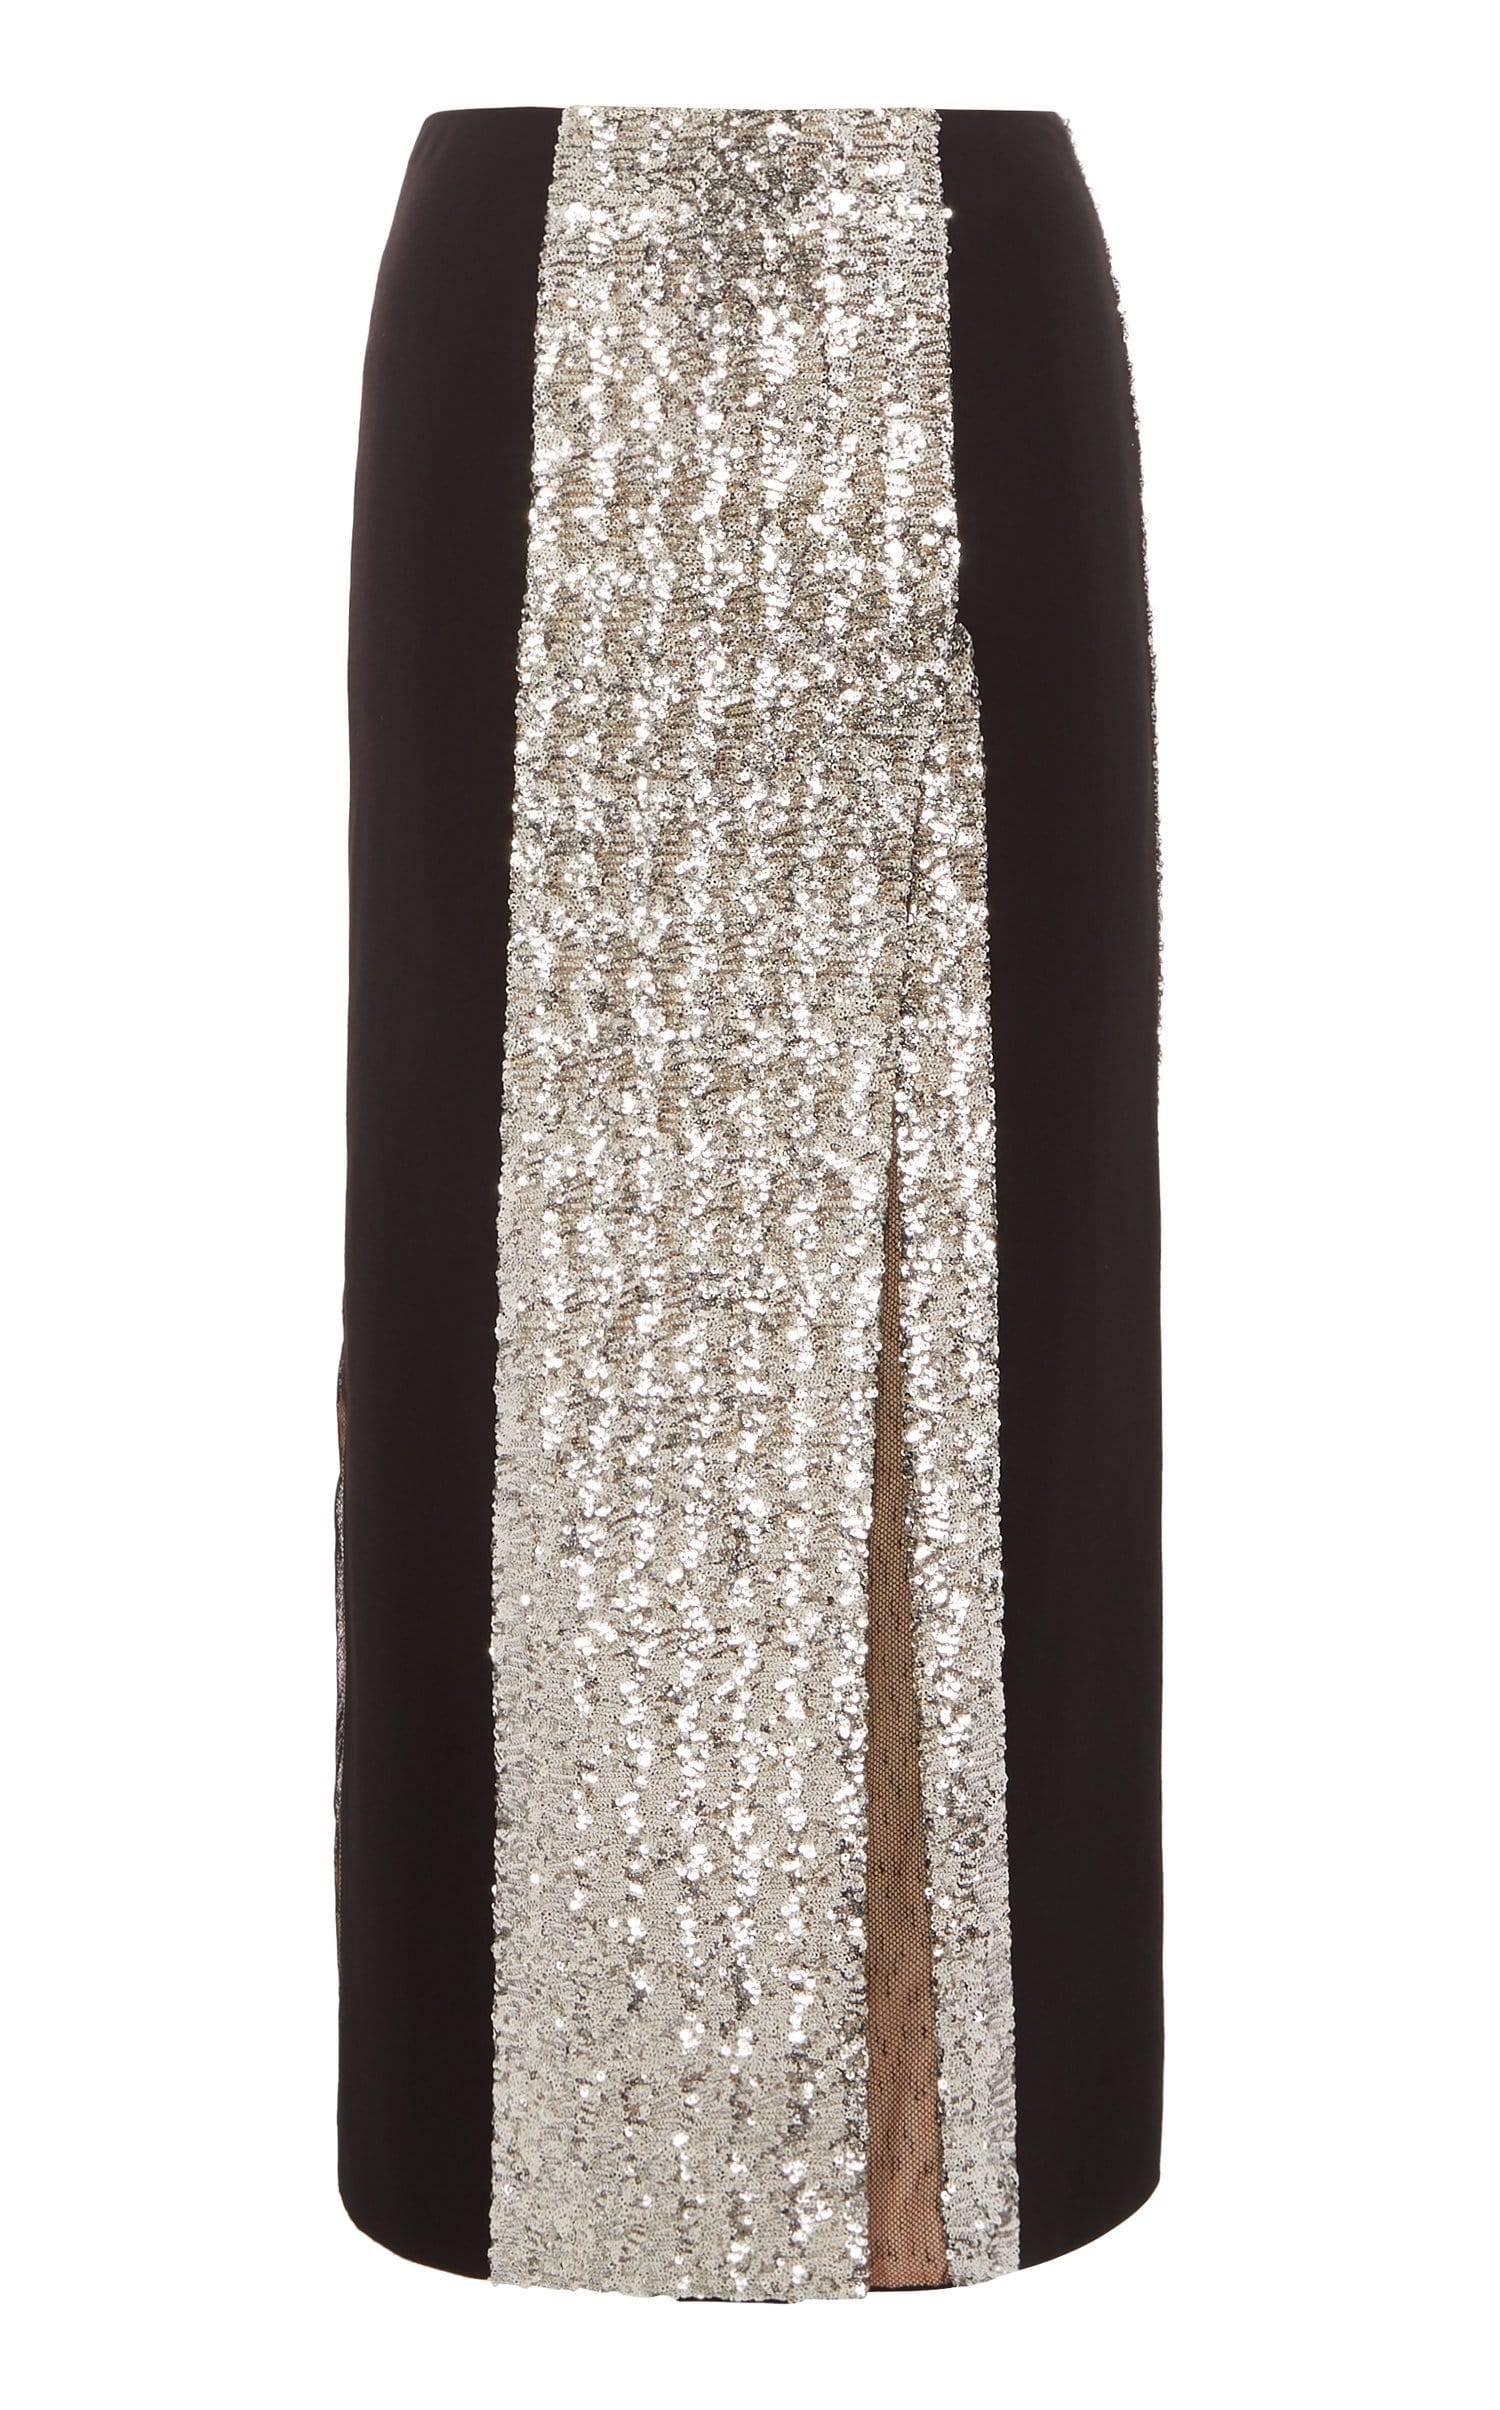 Romero Skirt In Black/Silver from Roland Mouret